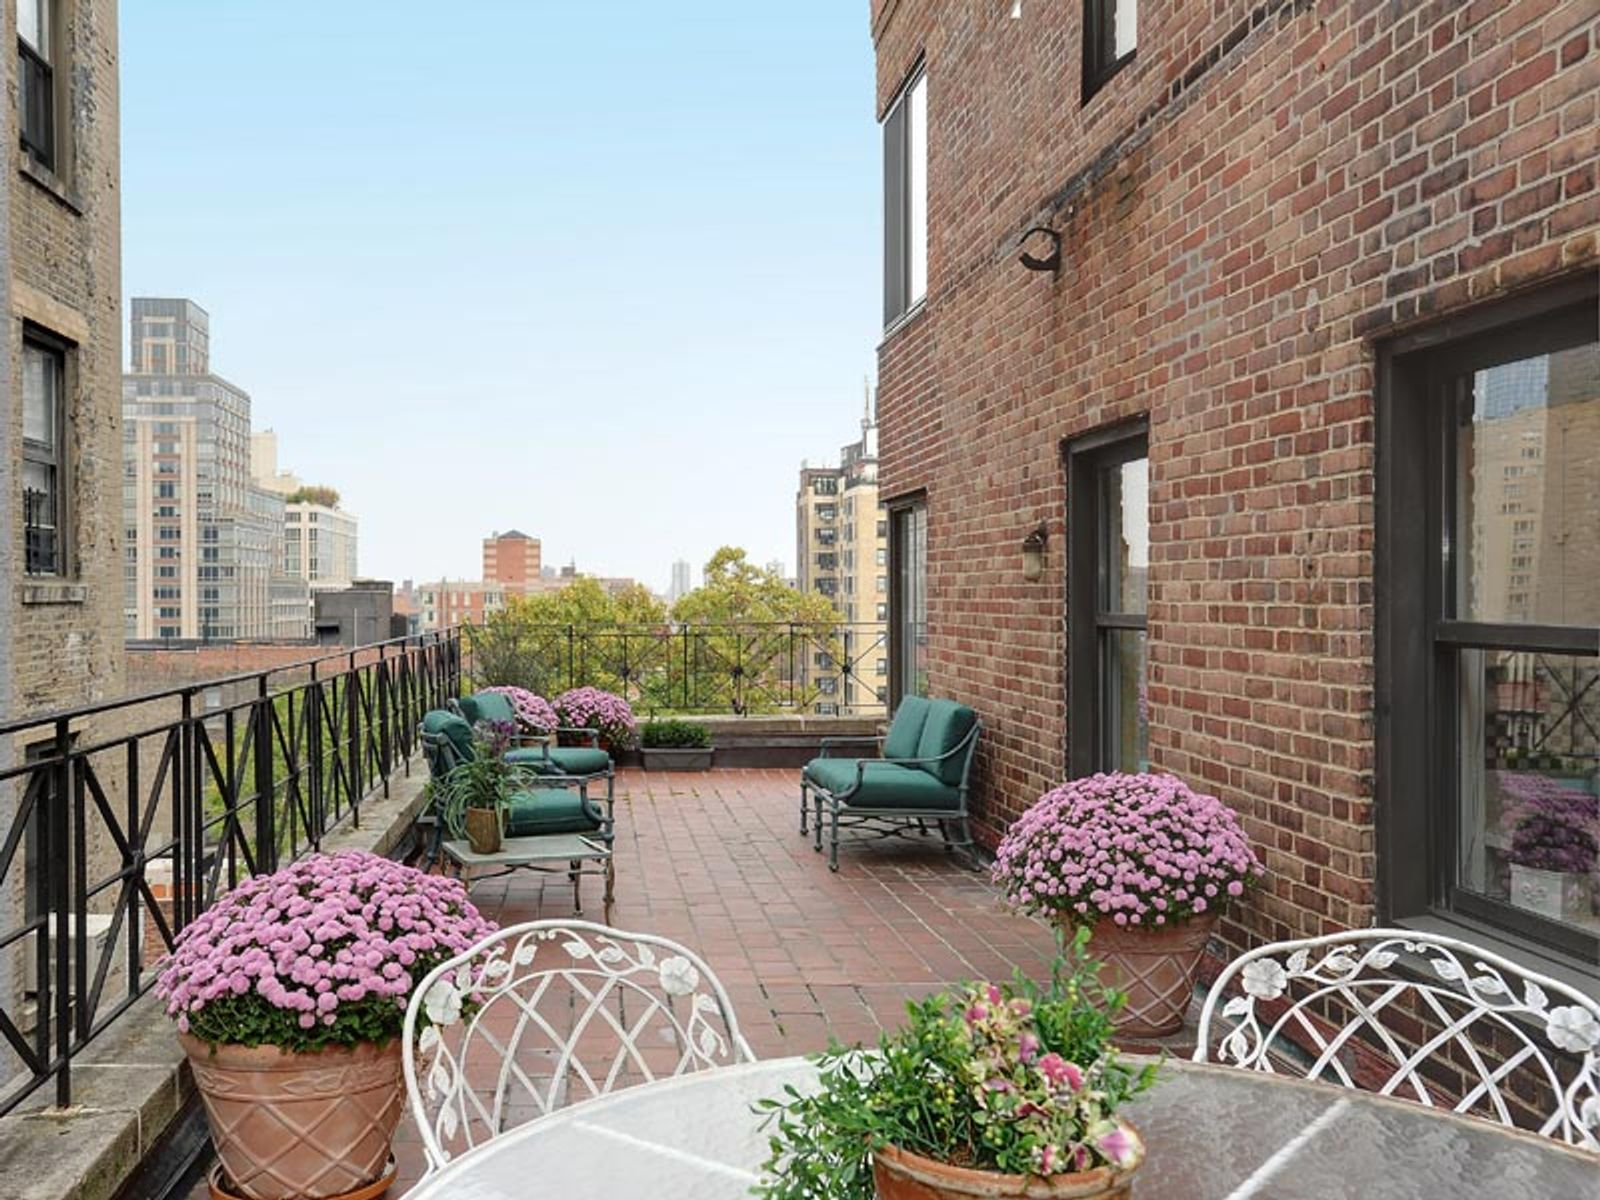 152 East 94th Street, New York NY Cooperative - New York City Real Estate